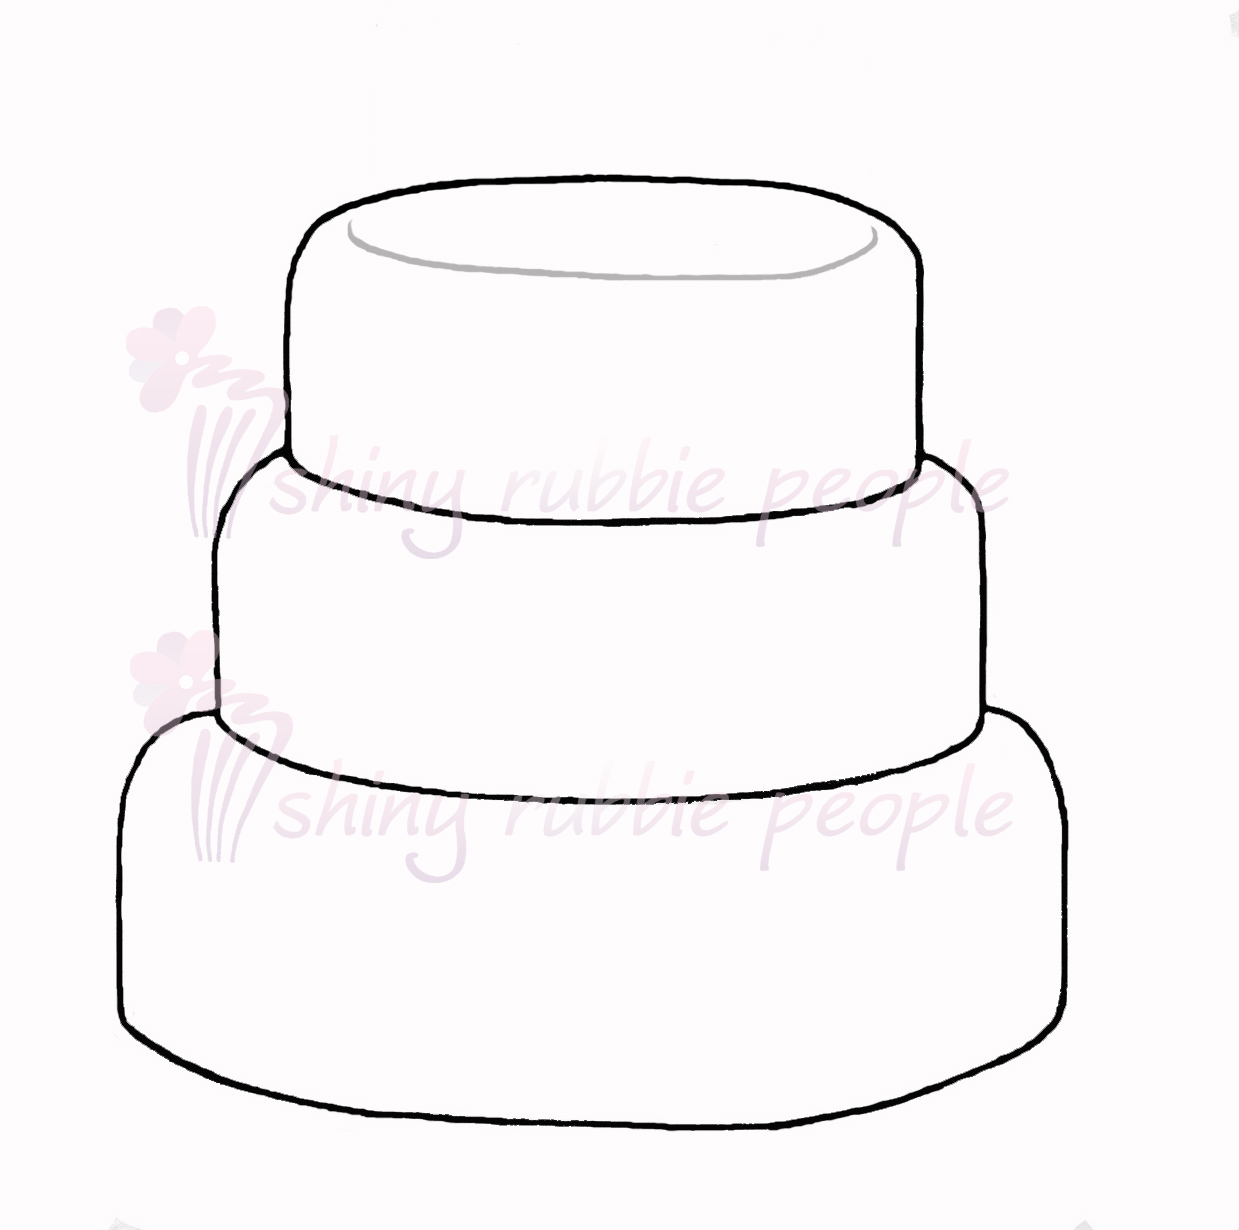 Two tiered cake clipart black jpg transparent library Tiered Cake Clipart | Free download best Tiered Cake Clipart on ... jpg transparent library